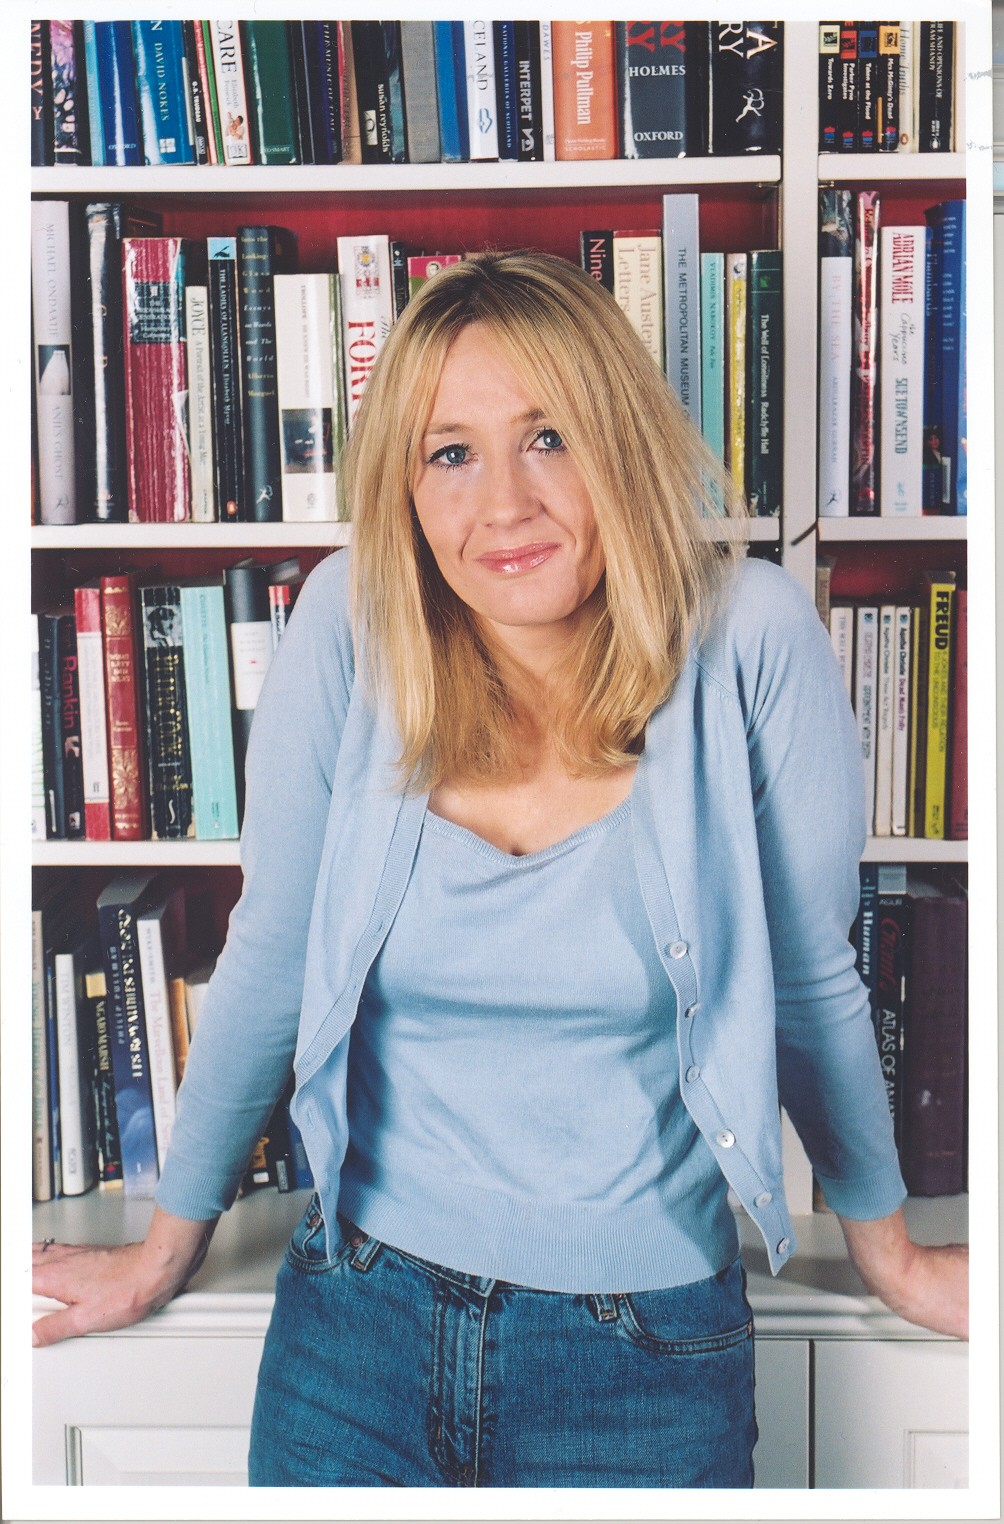 quintessential fiction writers joanne j rowling 1) the boy wizard harry potter and author jk rowling share the same birthday: 31st july 2) rowling went from being unemployed and living on state benefits to becoming a multi-millionaire in five .